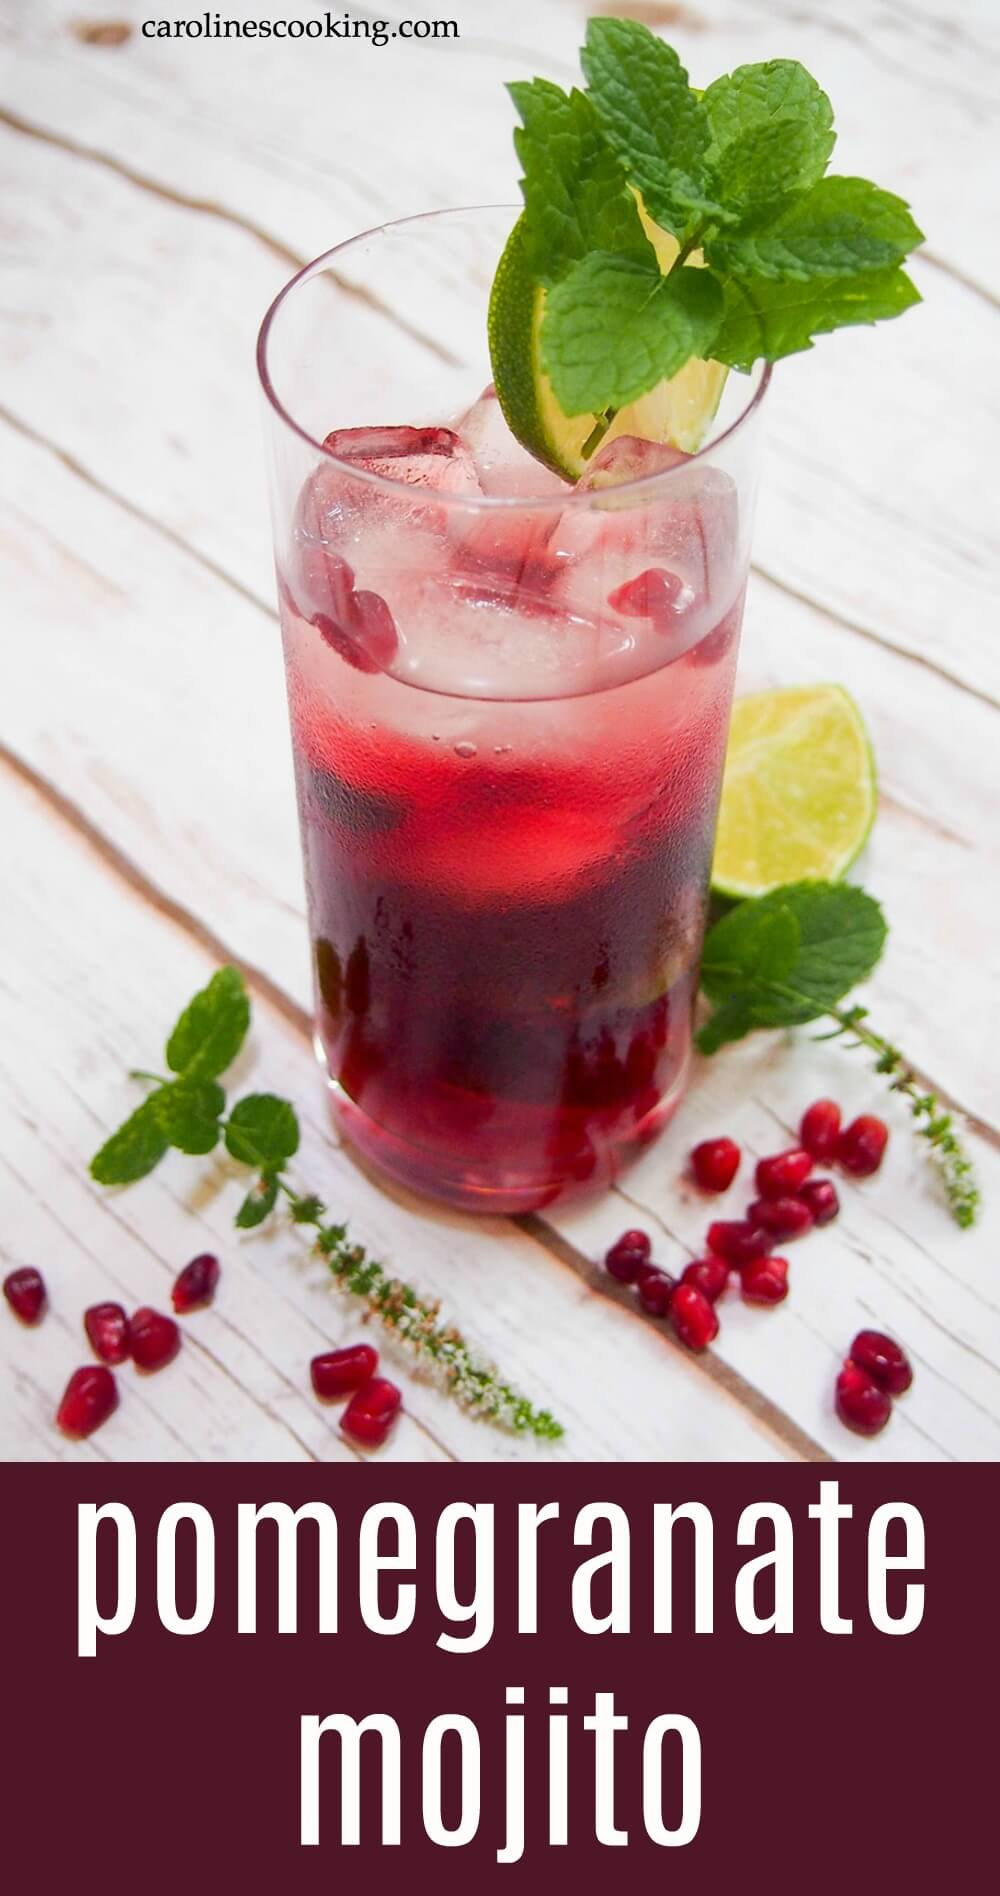 This pomegranate mojito is an easy and flavorful twist on a classic cocktail. With a beautiful bright color, it makes a great festive drink or any excuse! #pomegranate #mojito #mint #rum #cocktail